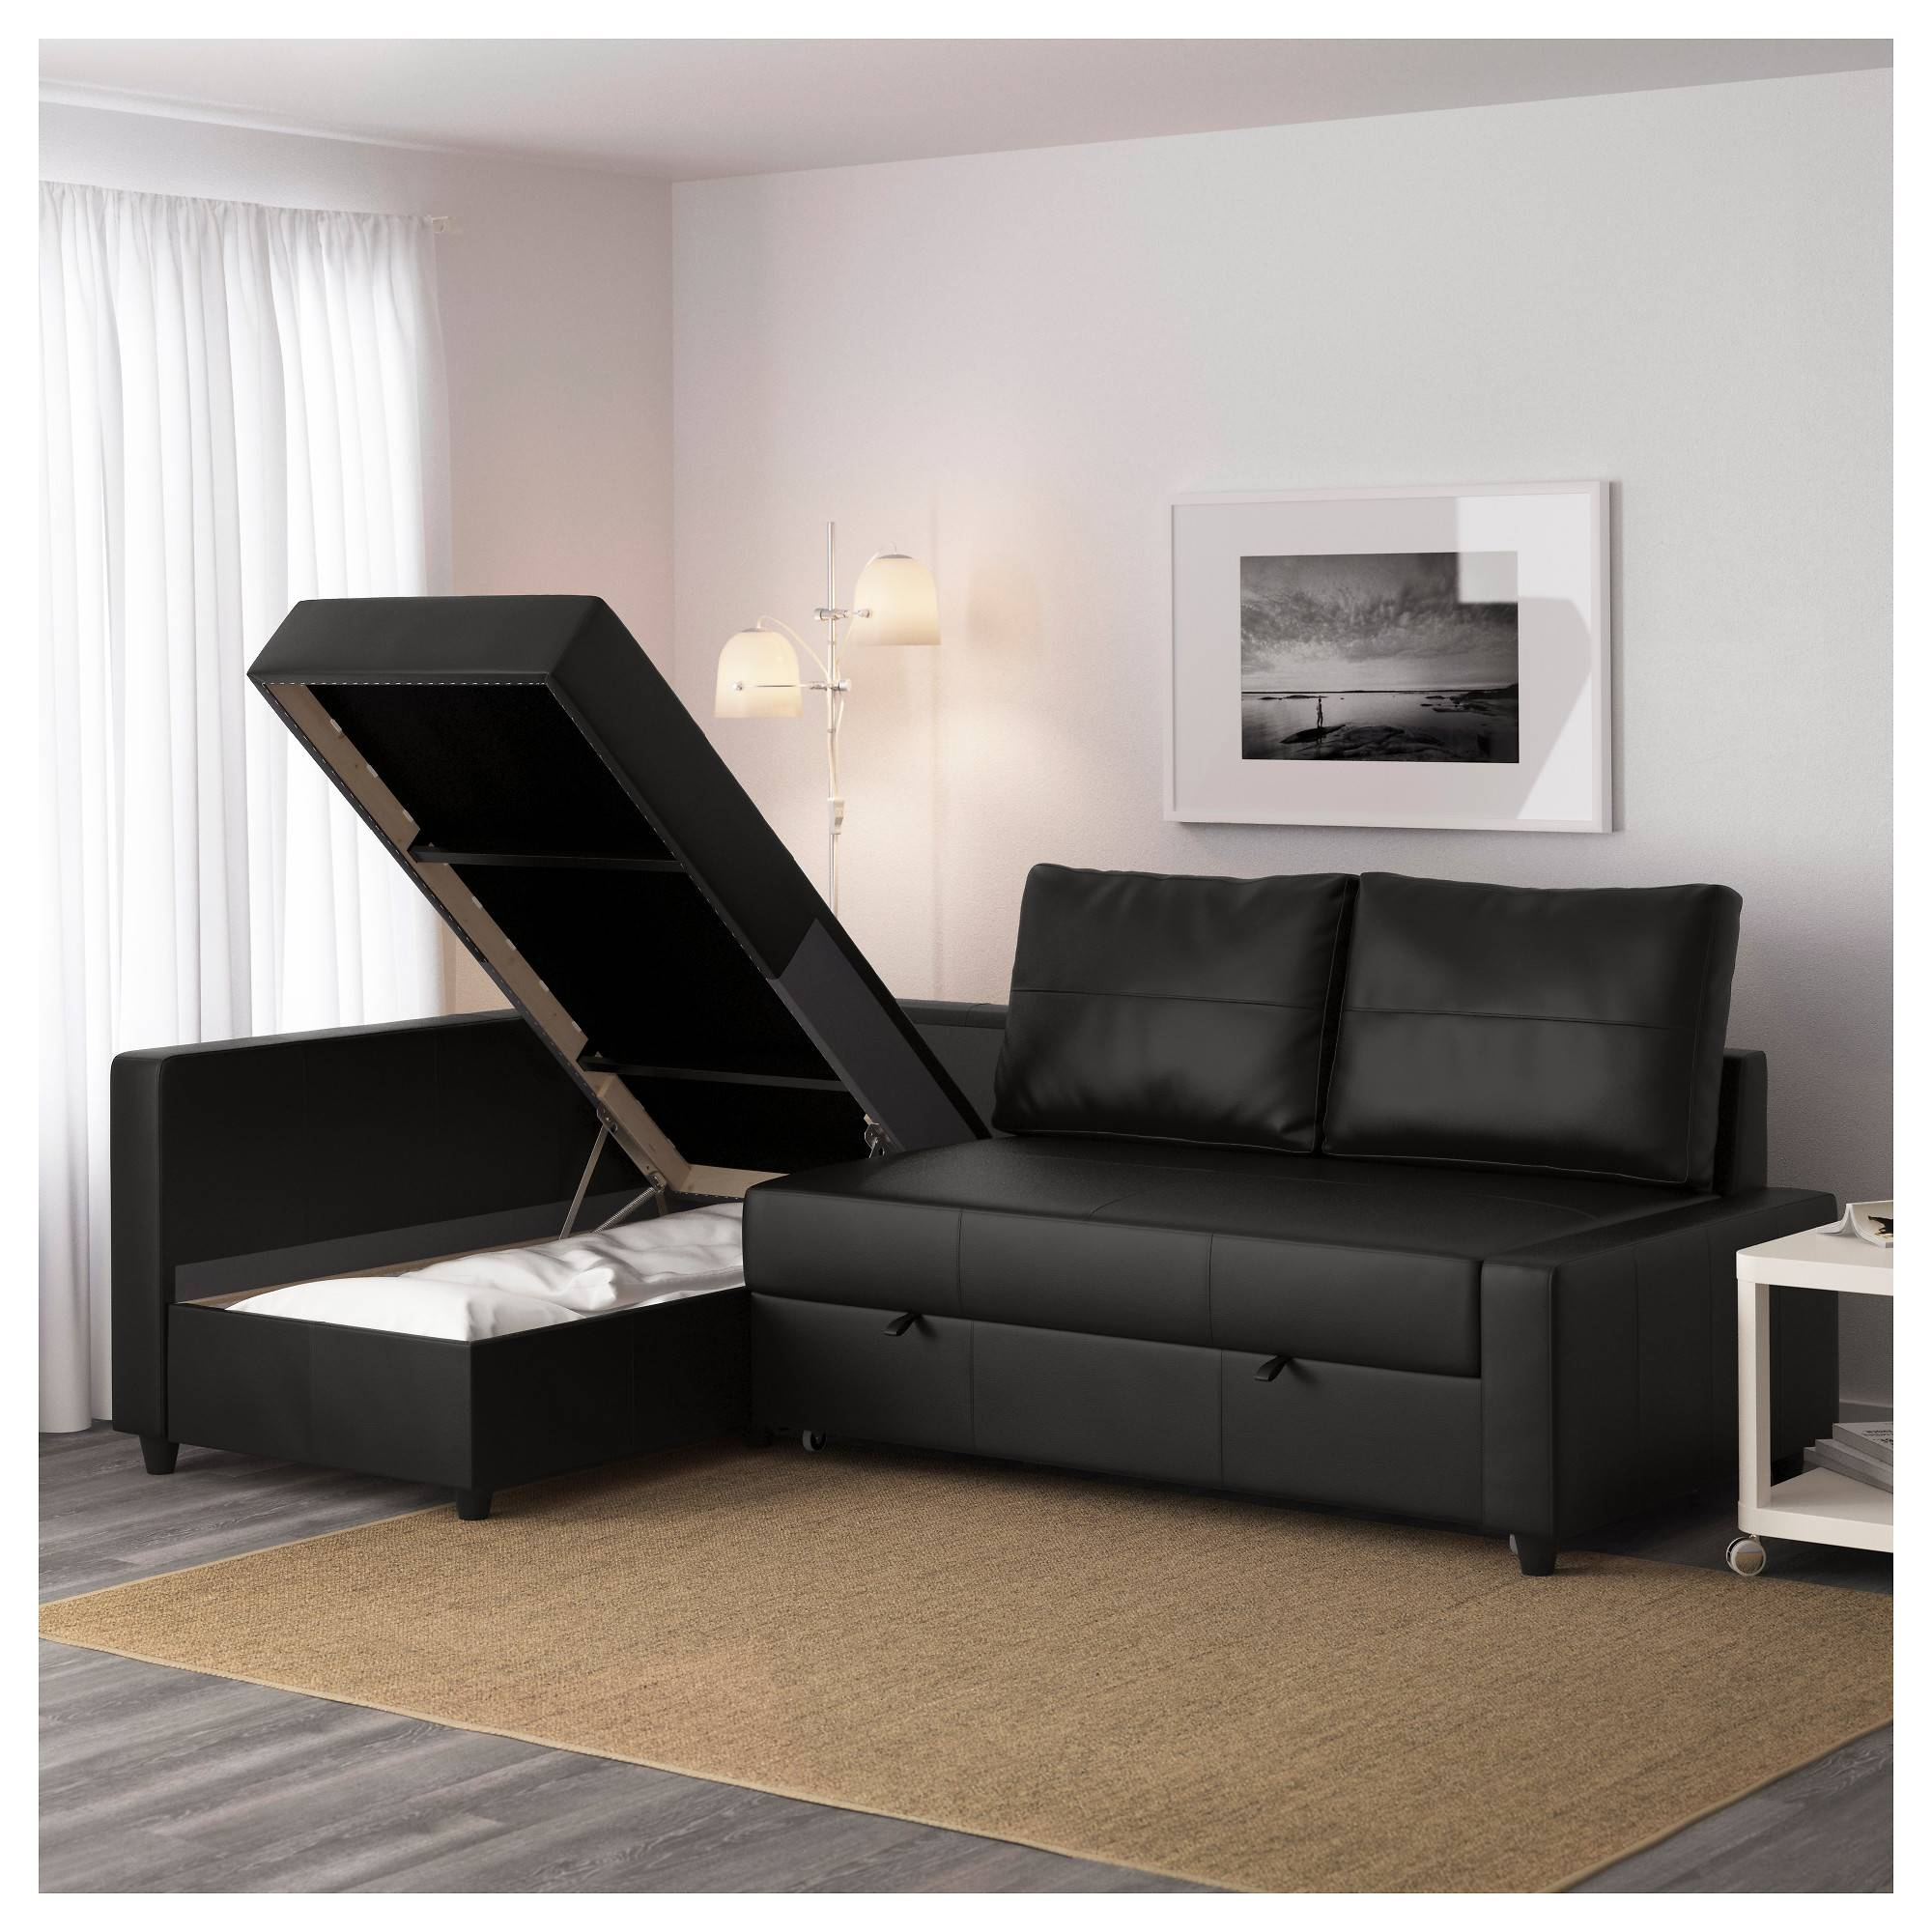 Friheten Sleeper Sectional,3 Seat W/storage - Skiftebo Dark Gray inside Ikea Sectional Sofa Bed (Image 2 of 25)